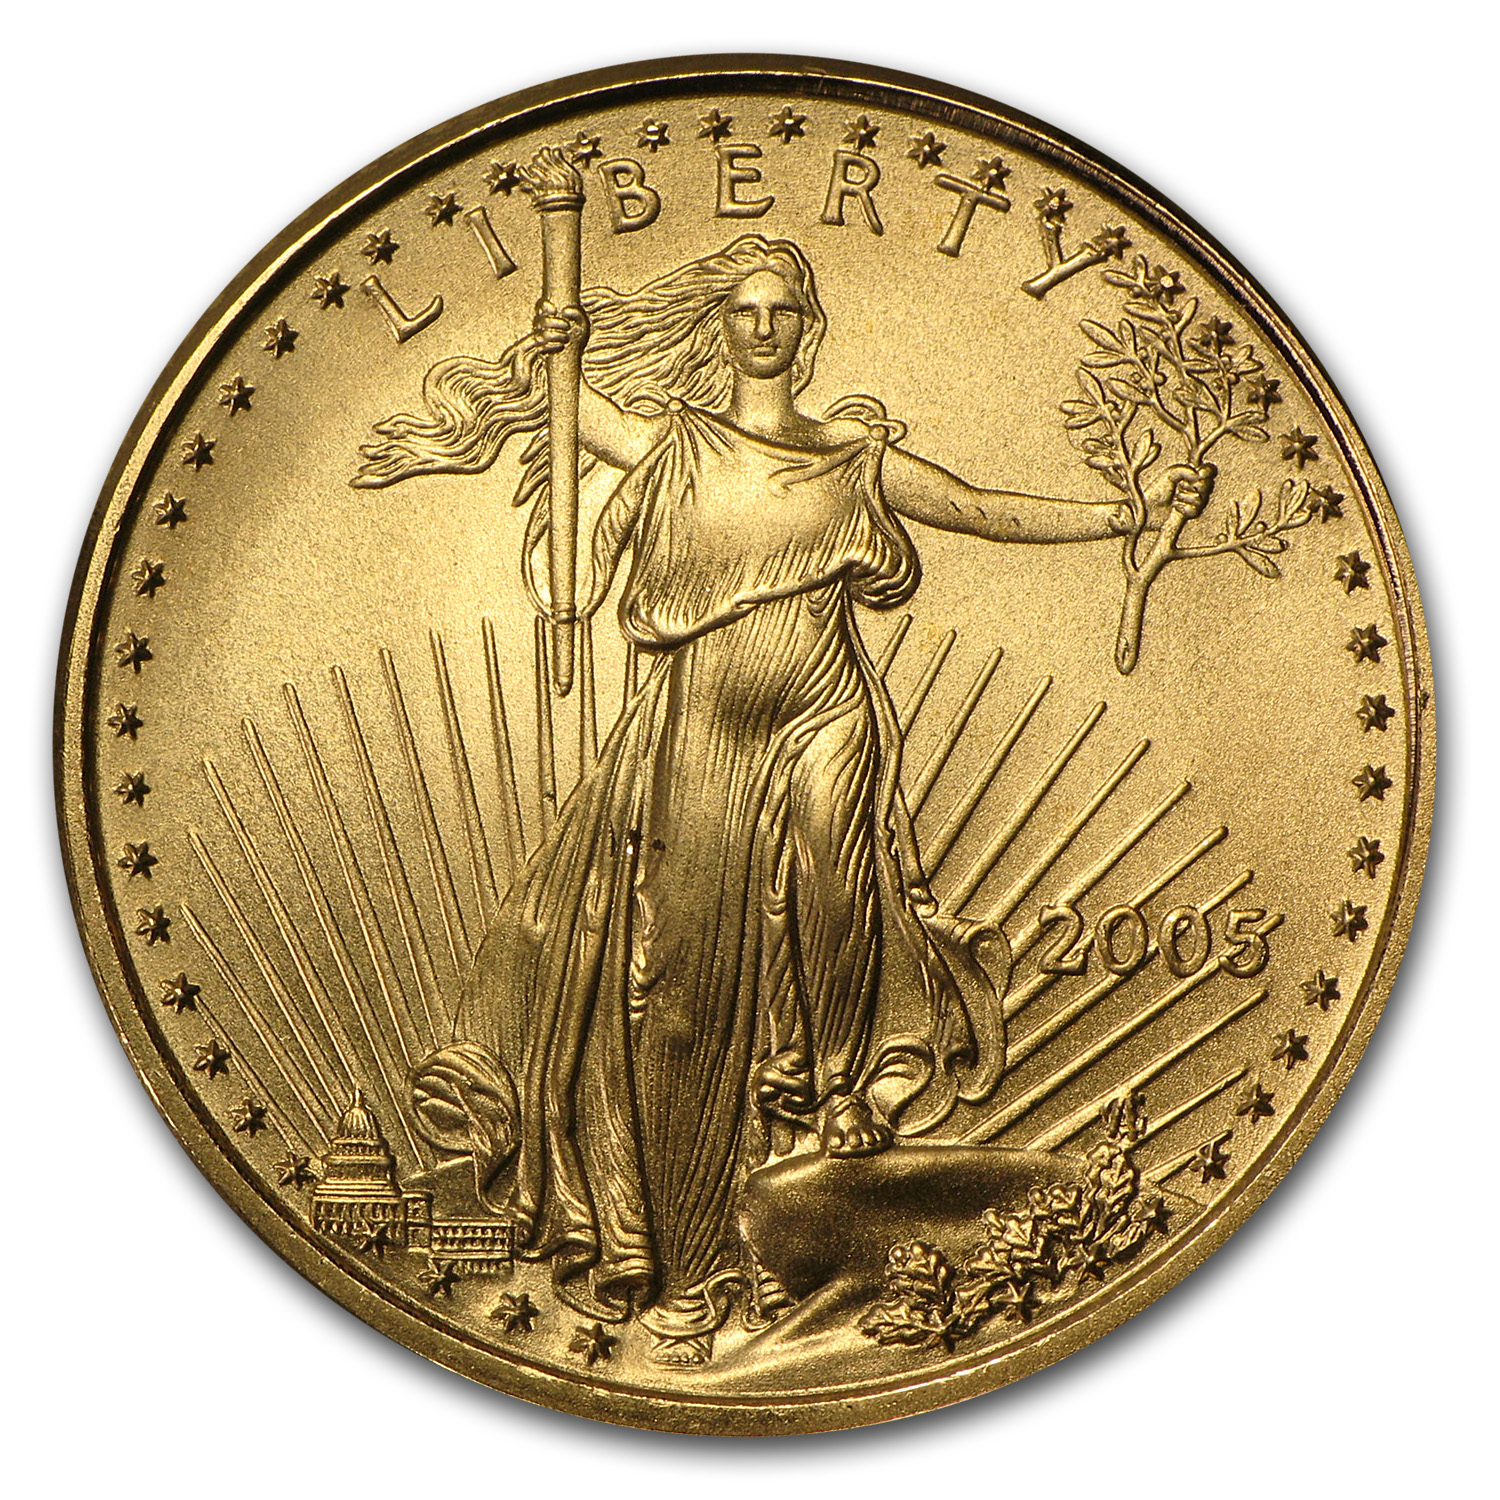 2005 1/4 oz Gold American Eagle (BU)